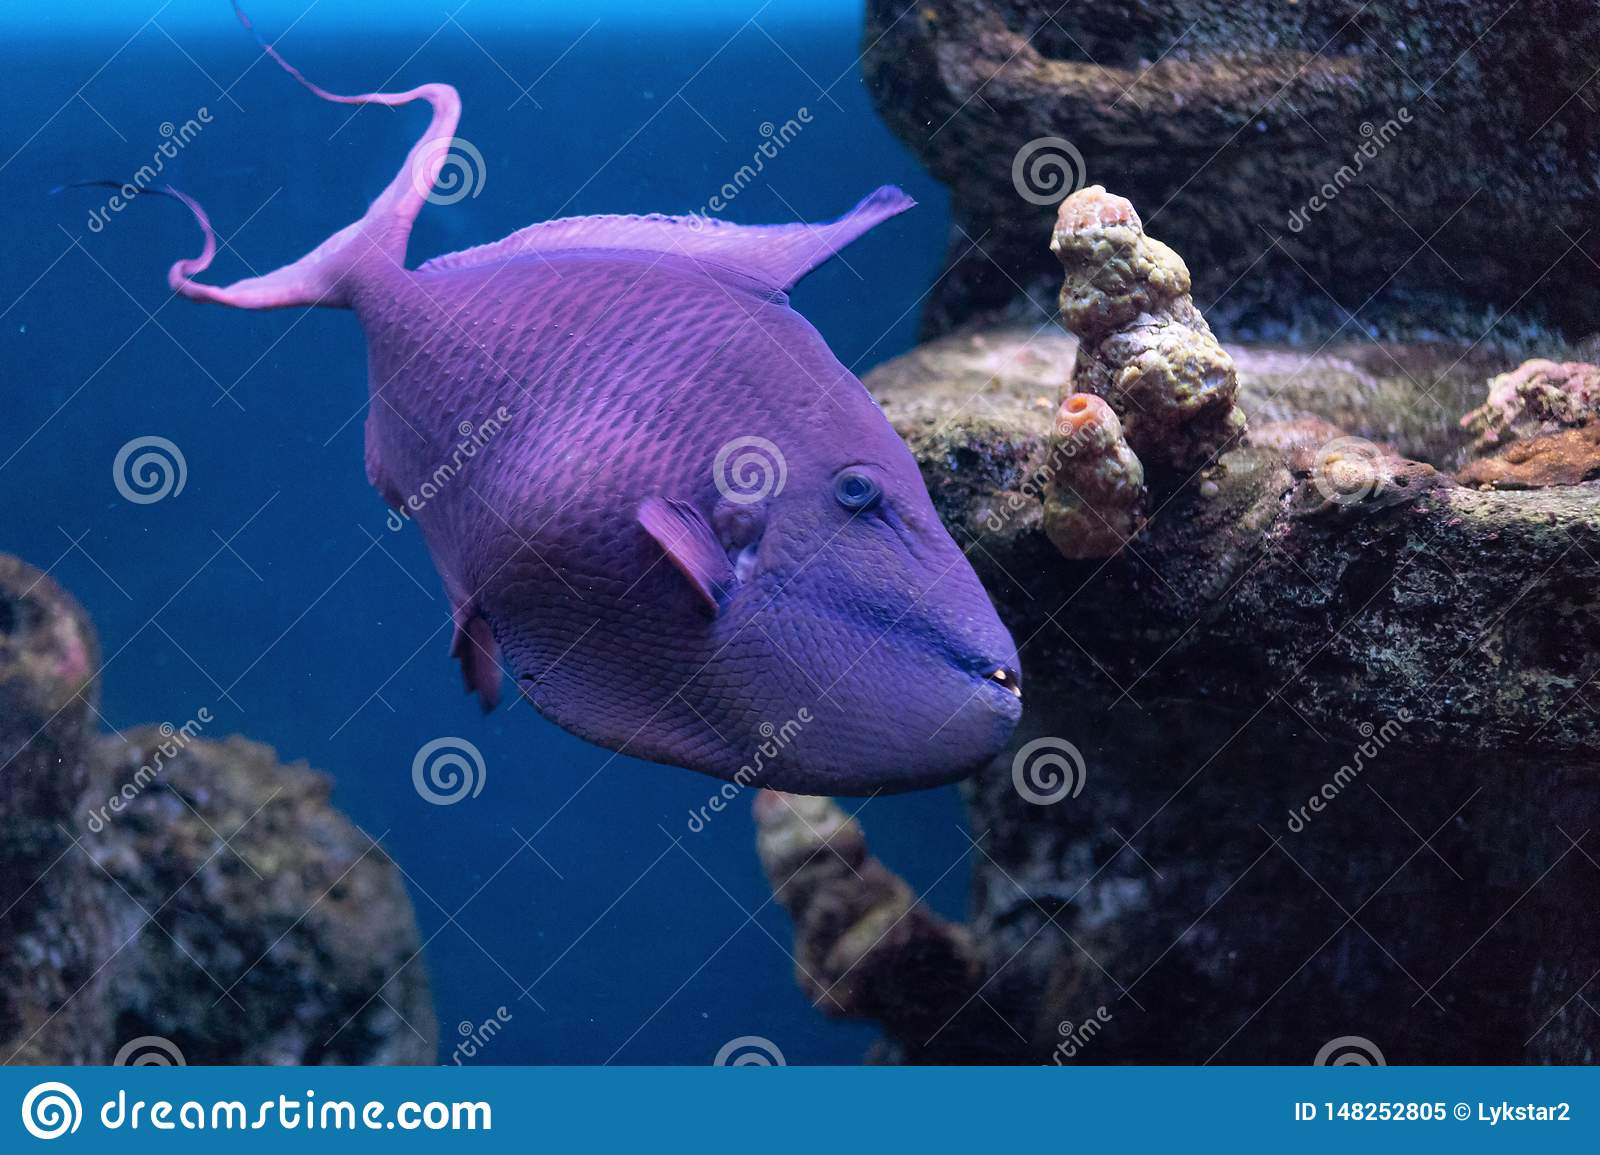 Triggerfish Krasnopolye or Queen black trigger, Red-notched Red Fang trigger exotic handsome fish with strong teeth raskrytaya